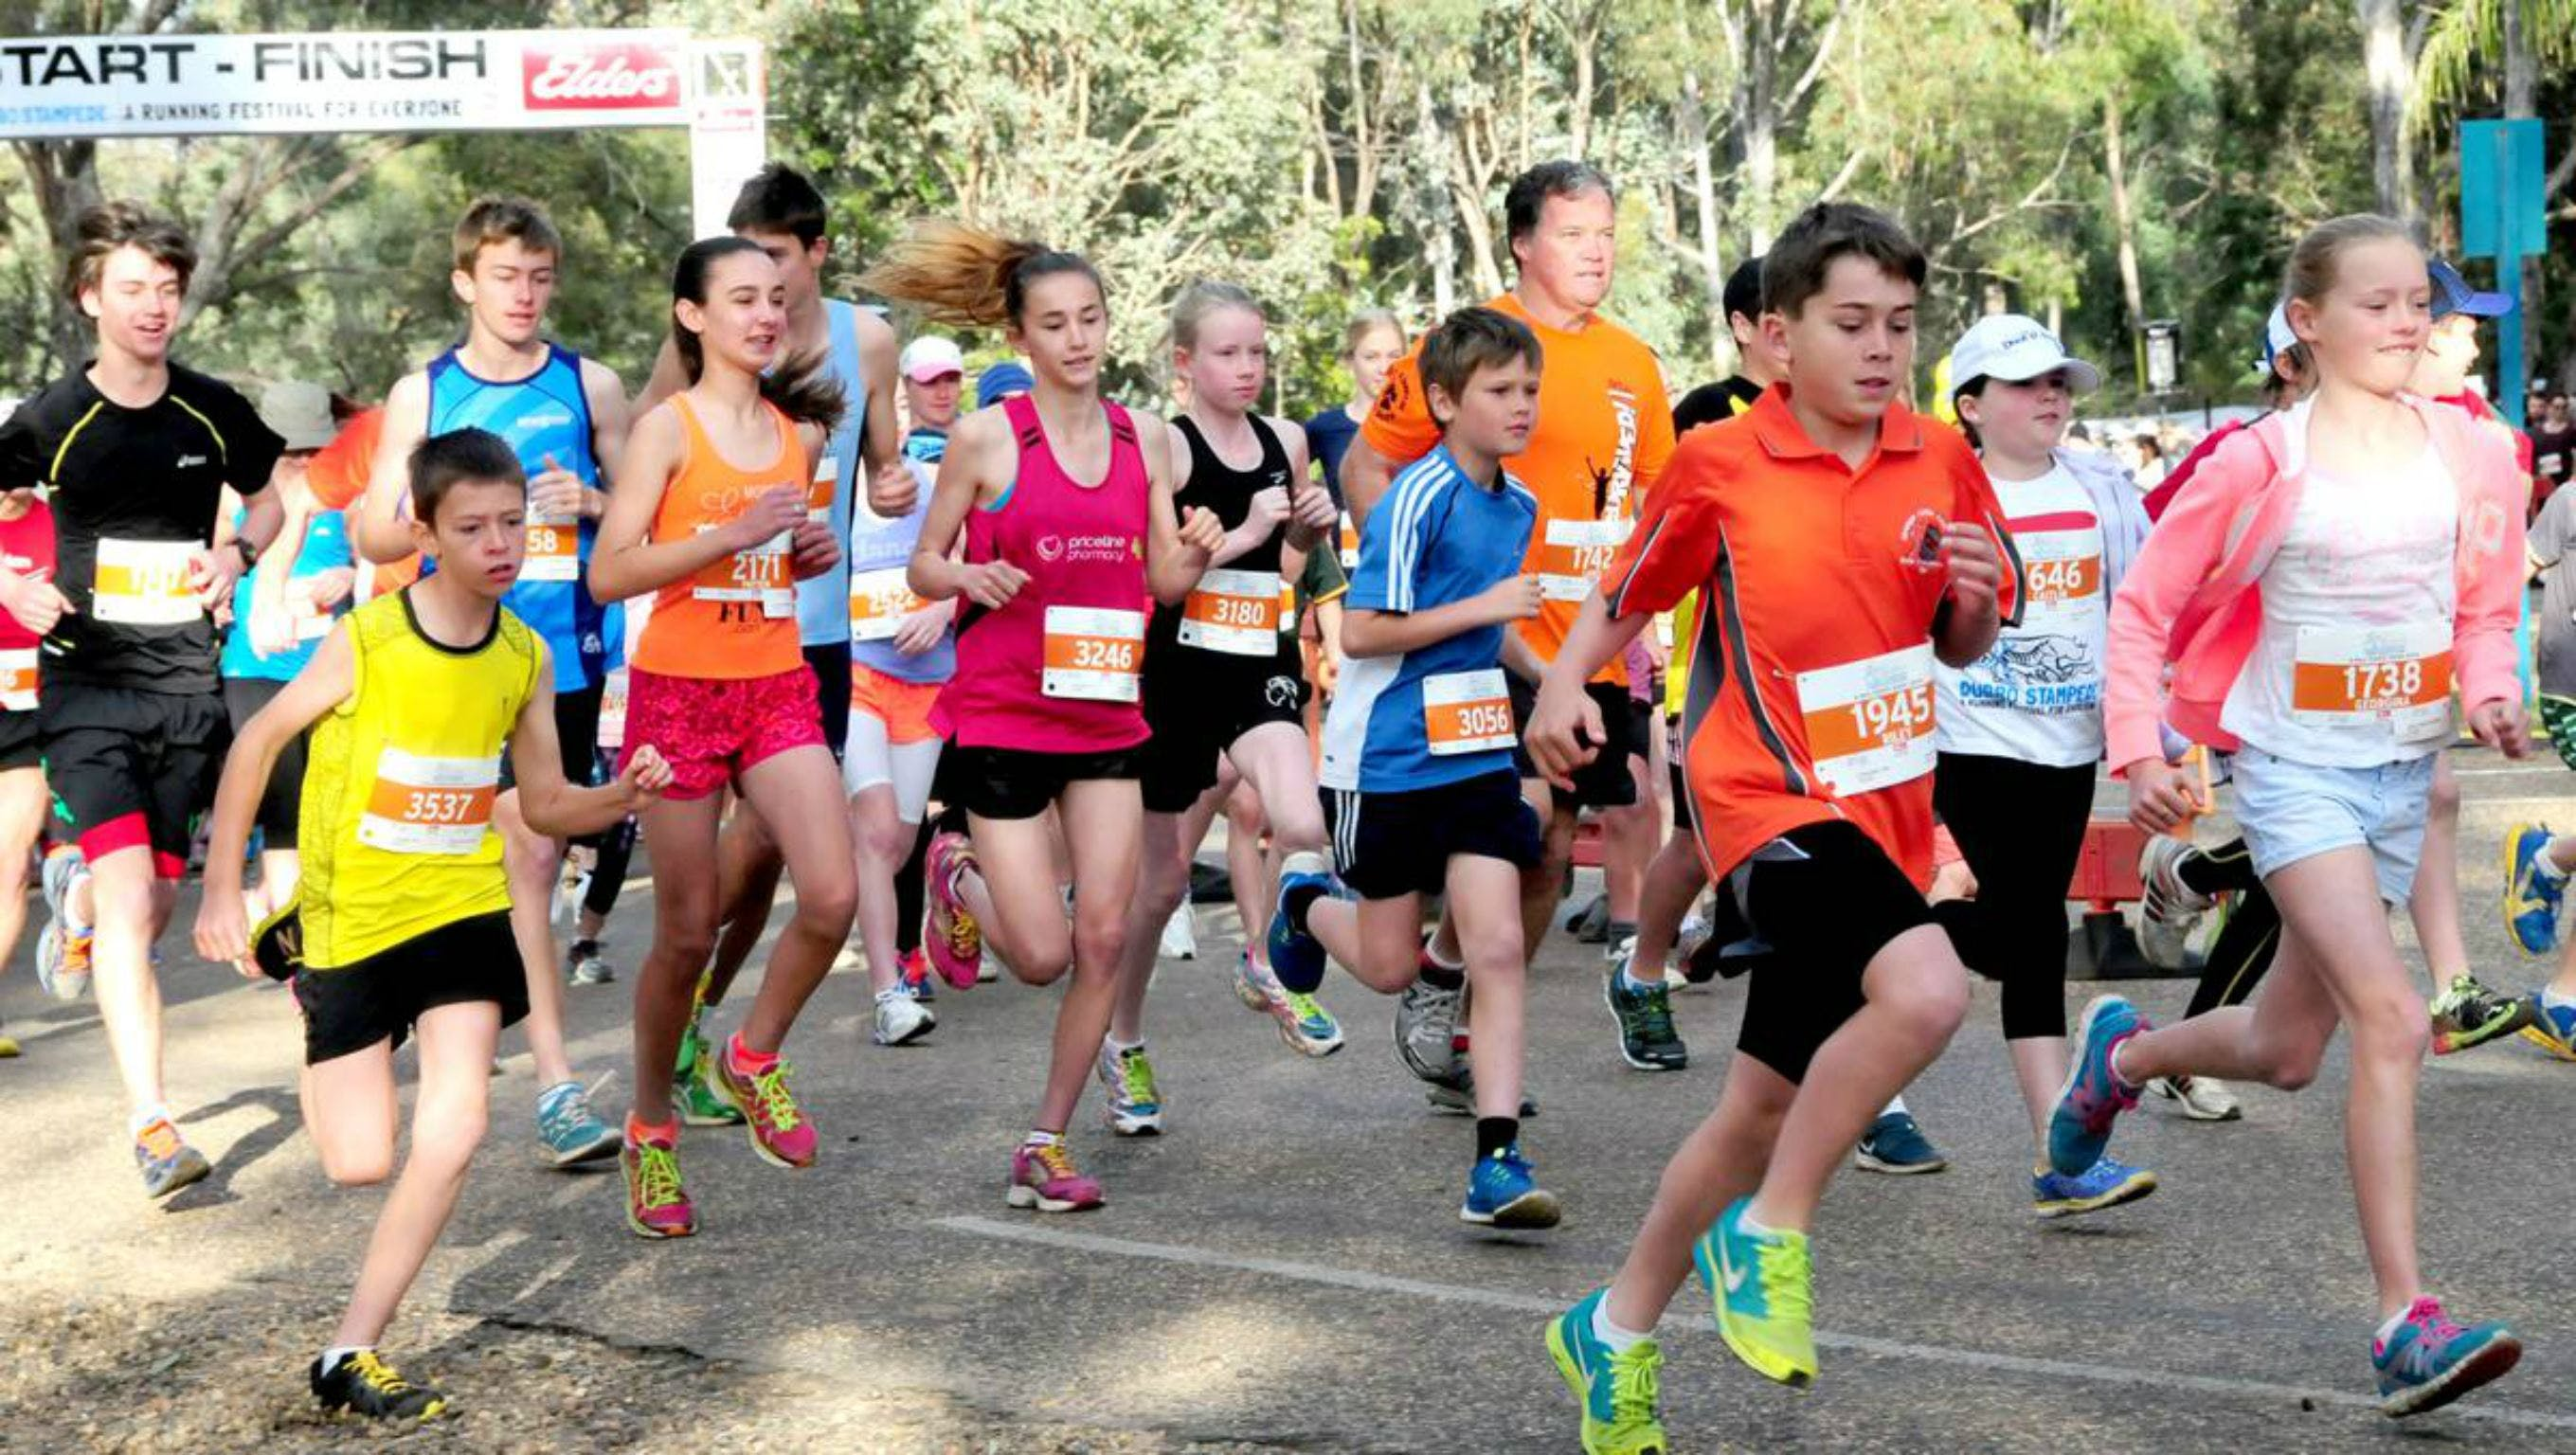 MAAS Group Dubbo Stampede Running Festival - New South Wales Tourism